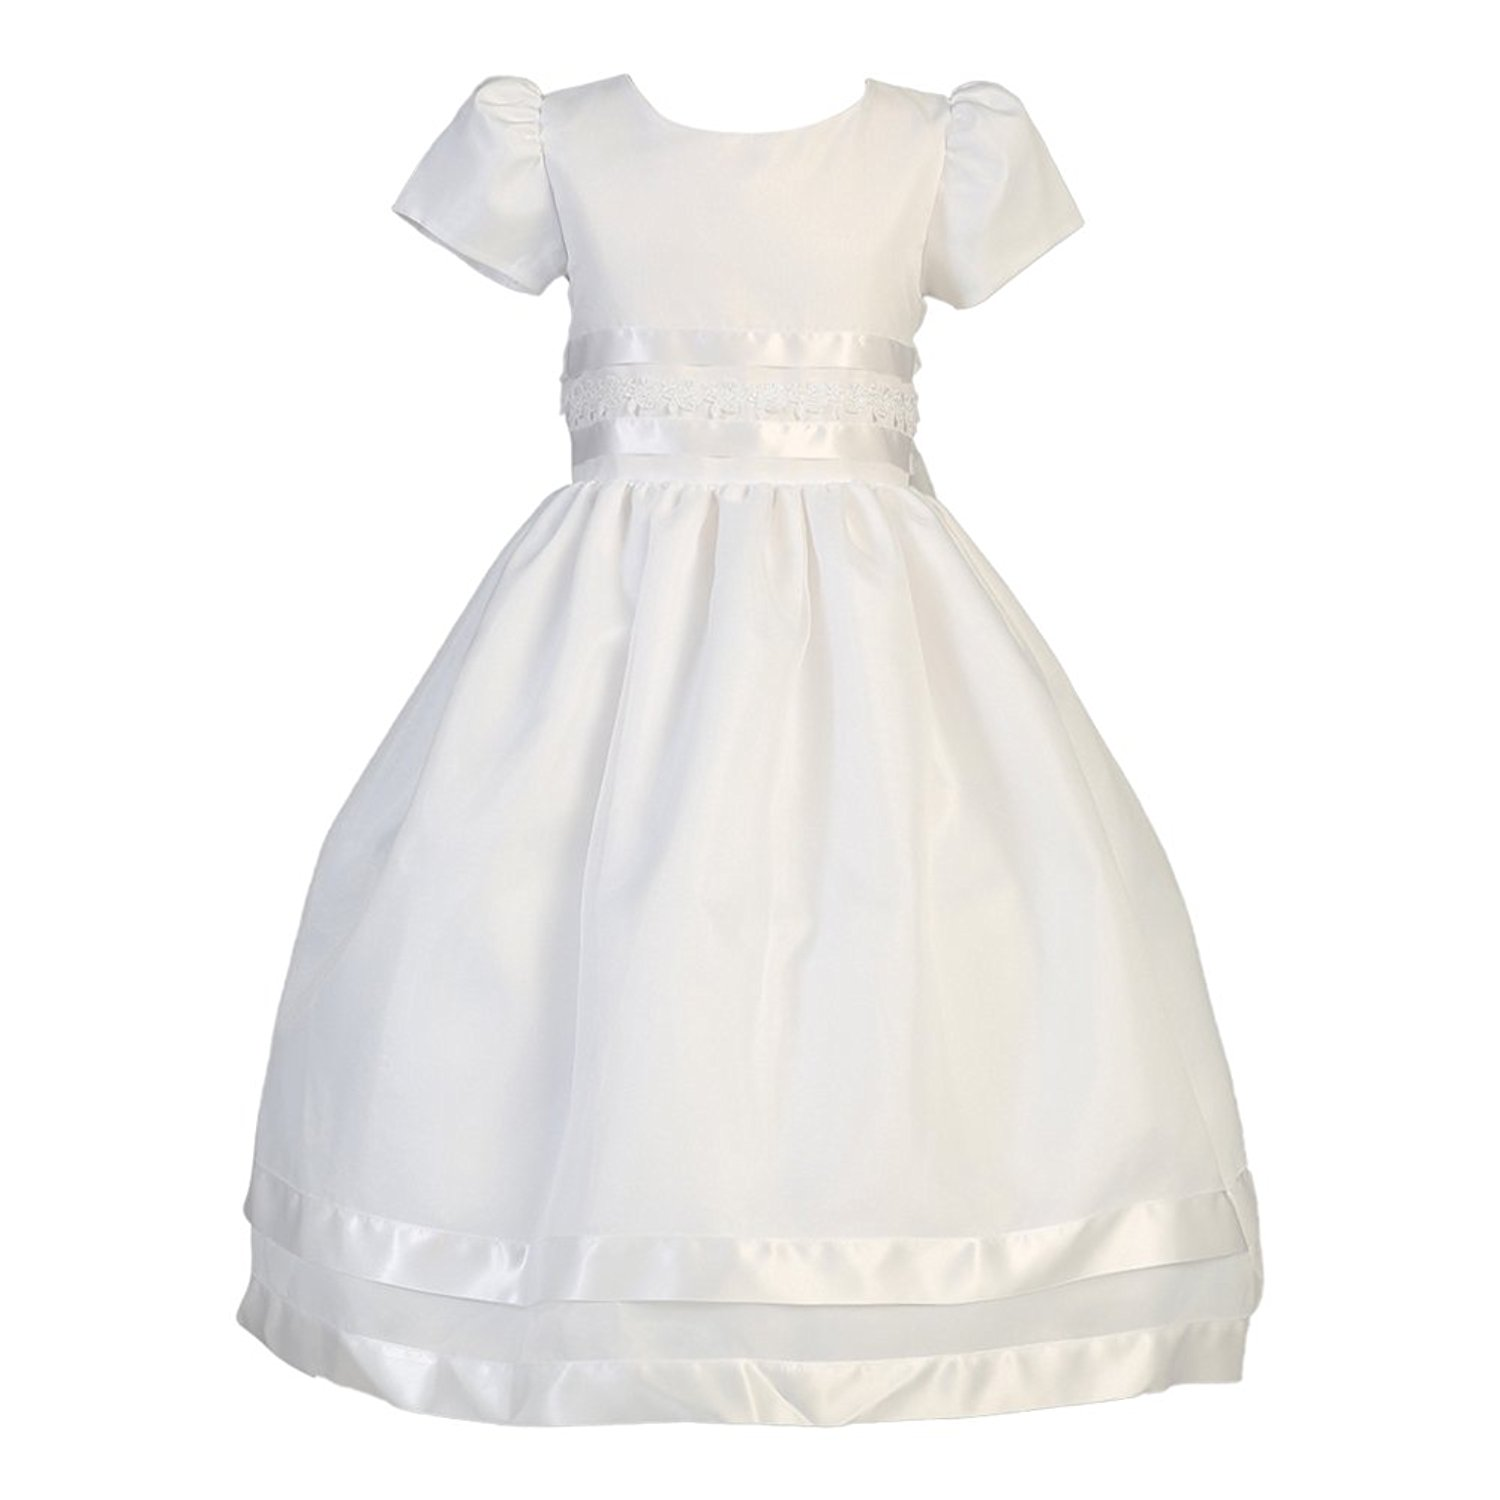 e6e31d84412 Get Quotations · Lito Big Girls White Satin Lace Organza Tea Length Communion  Dress